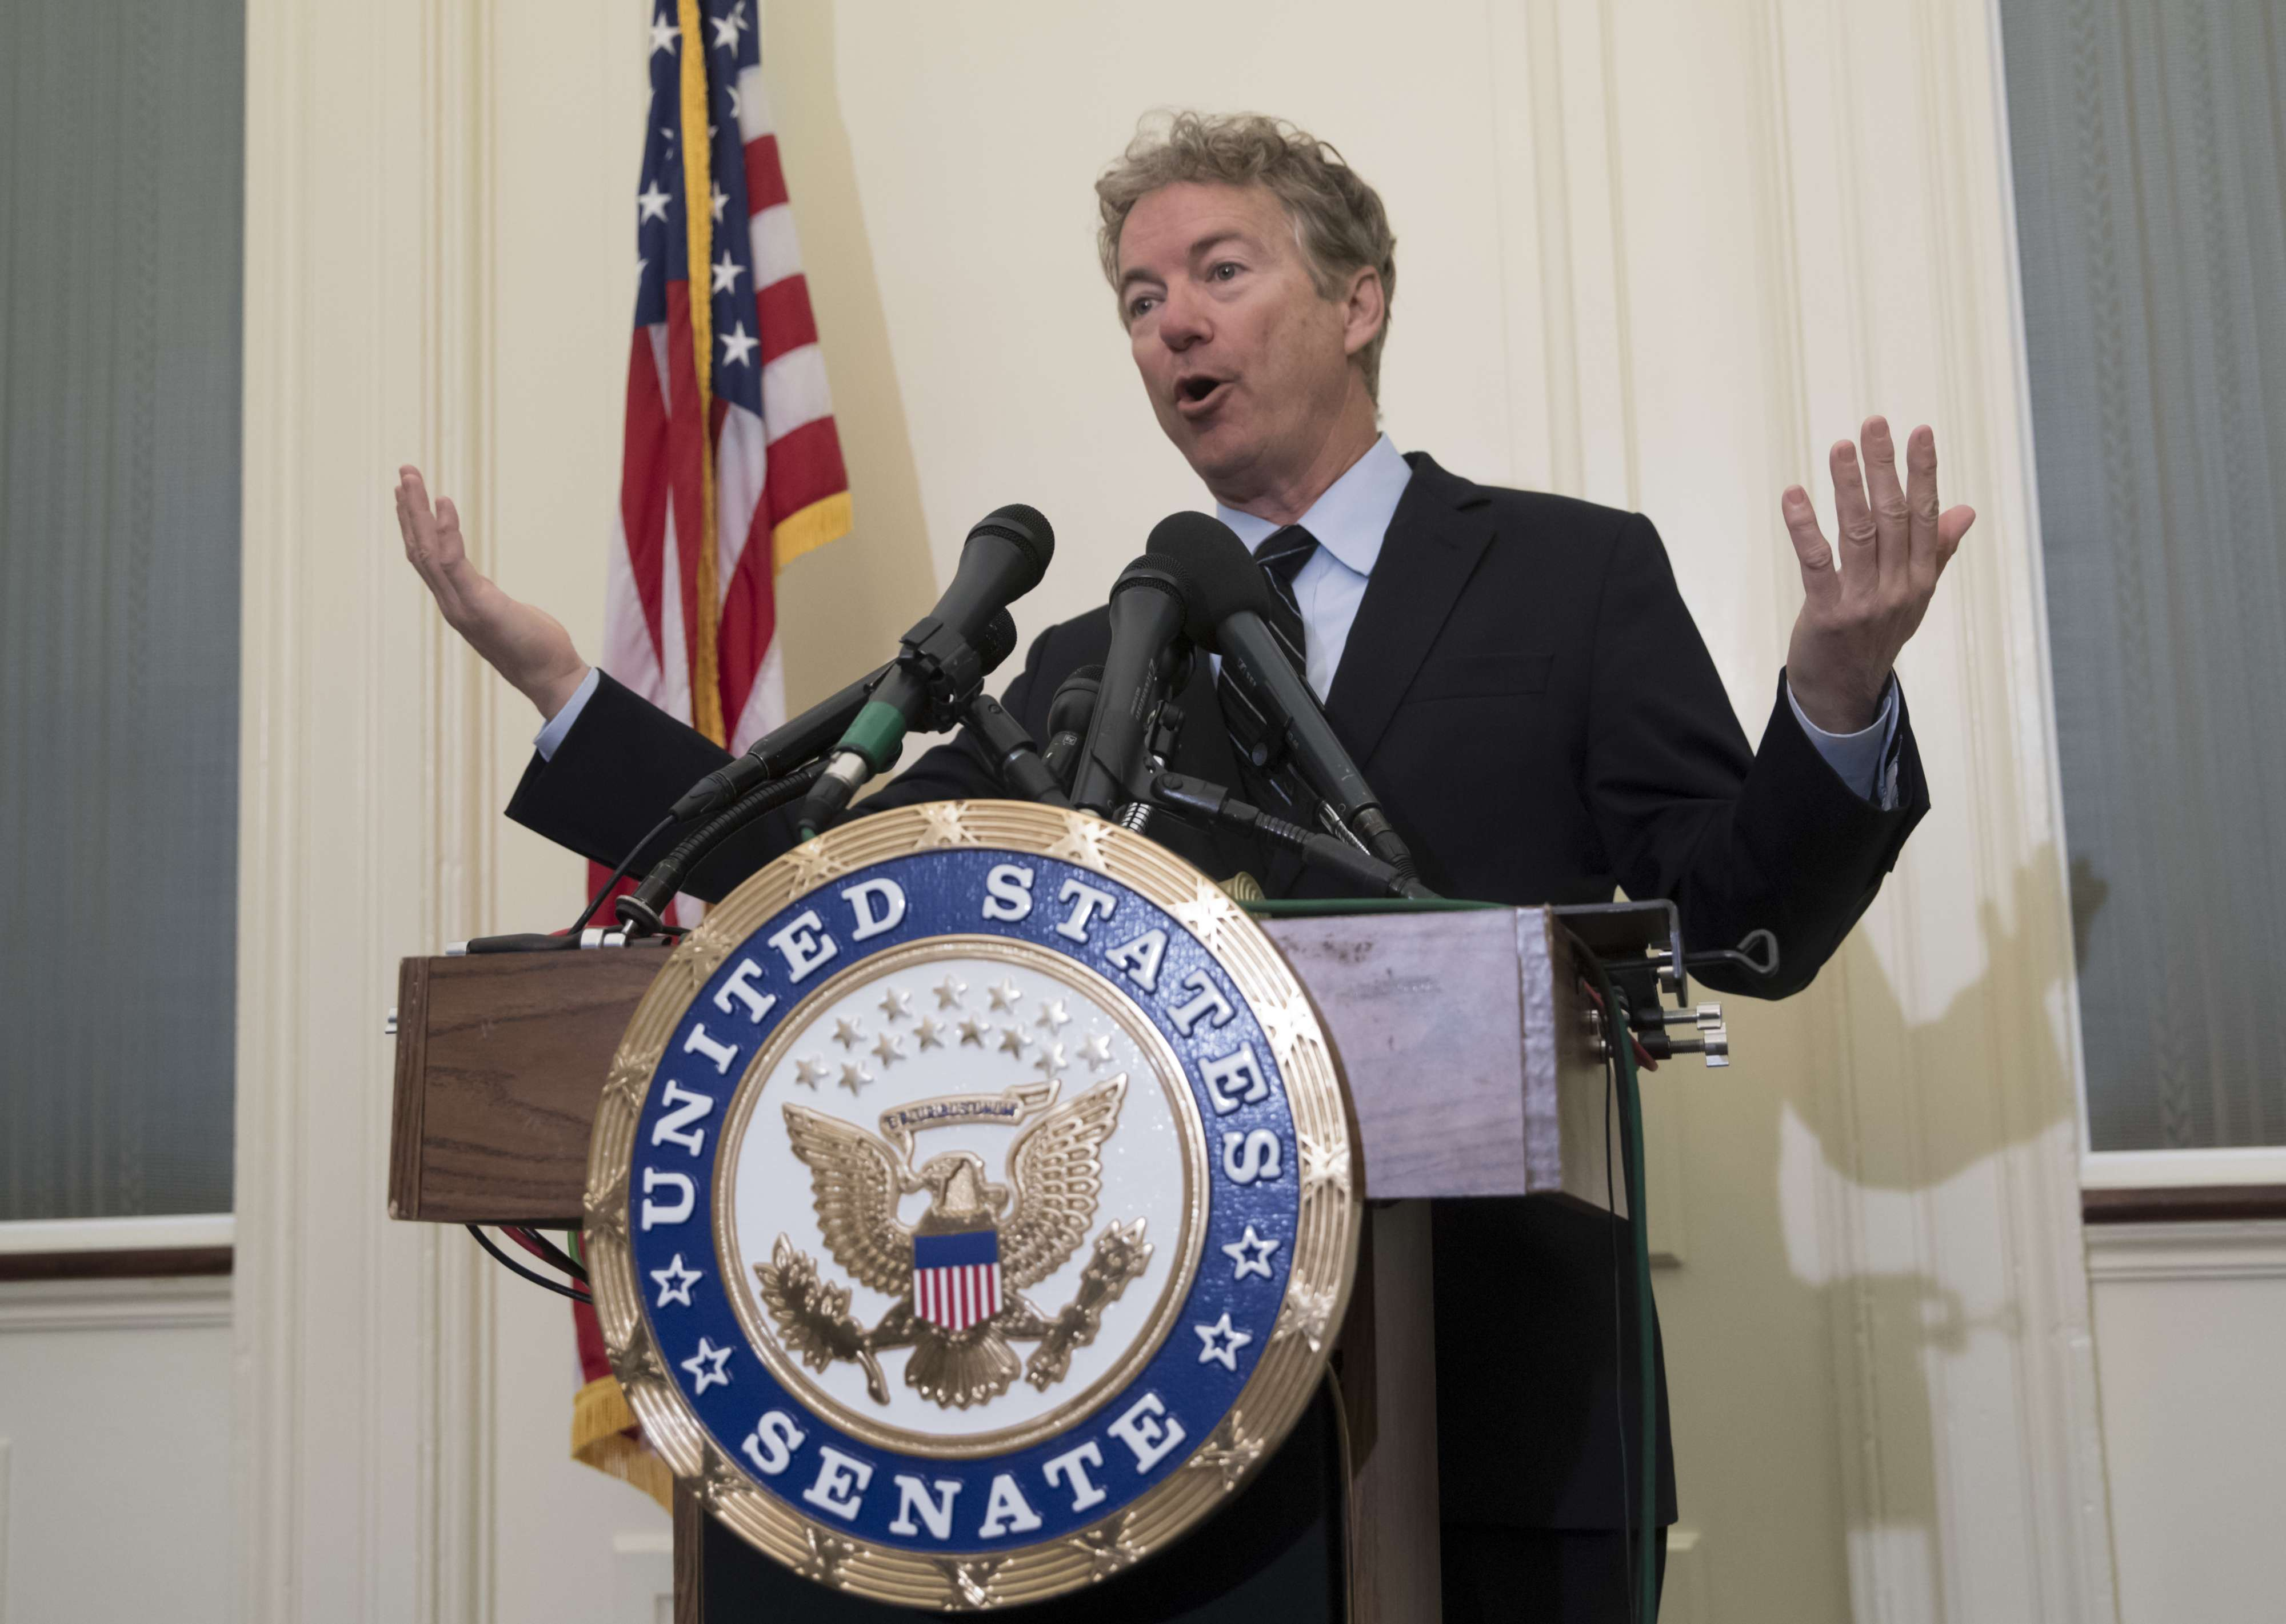 Republican Senator Rand Paul of Kentucky speaks during a press conference at the US Capitol to announce his opposition to the nomination of CIA Director Mike Pompeo as new Secretary of State, on March 14. (AP)